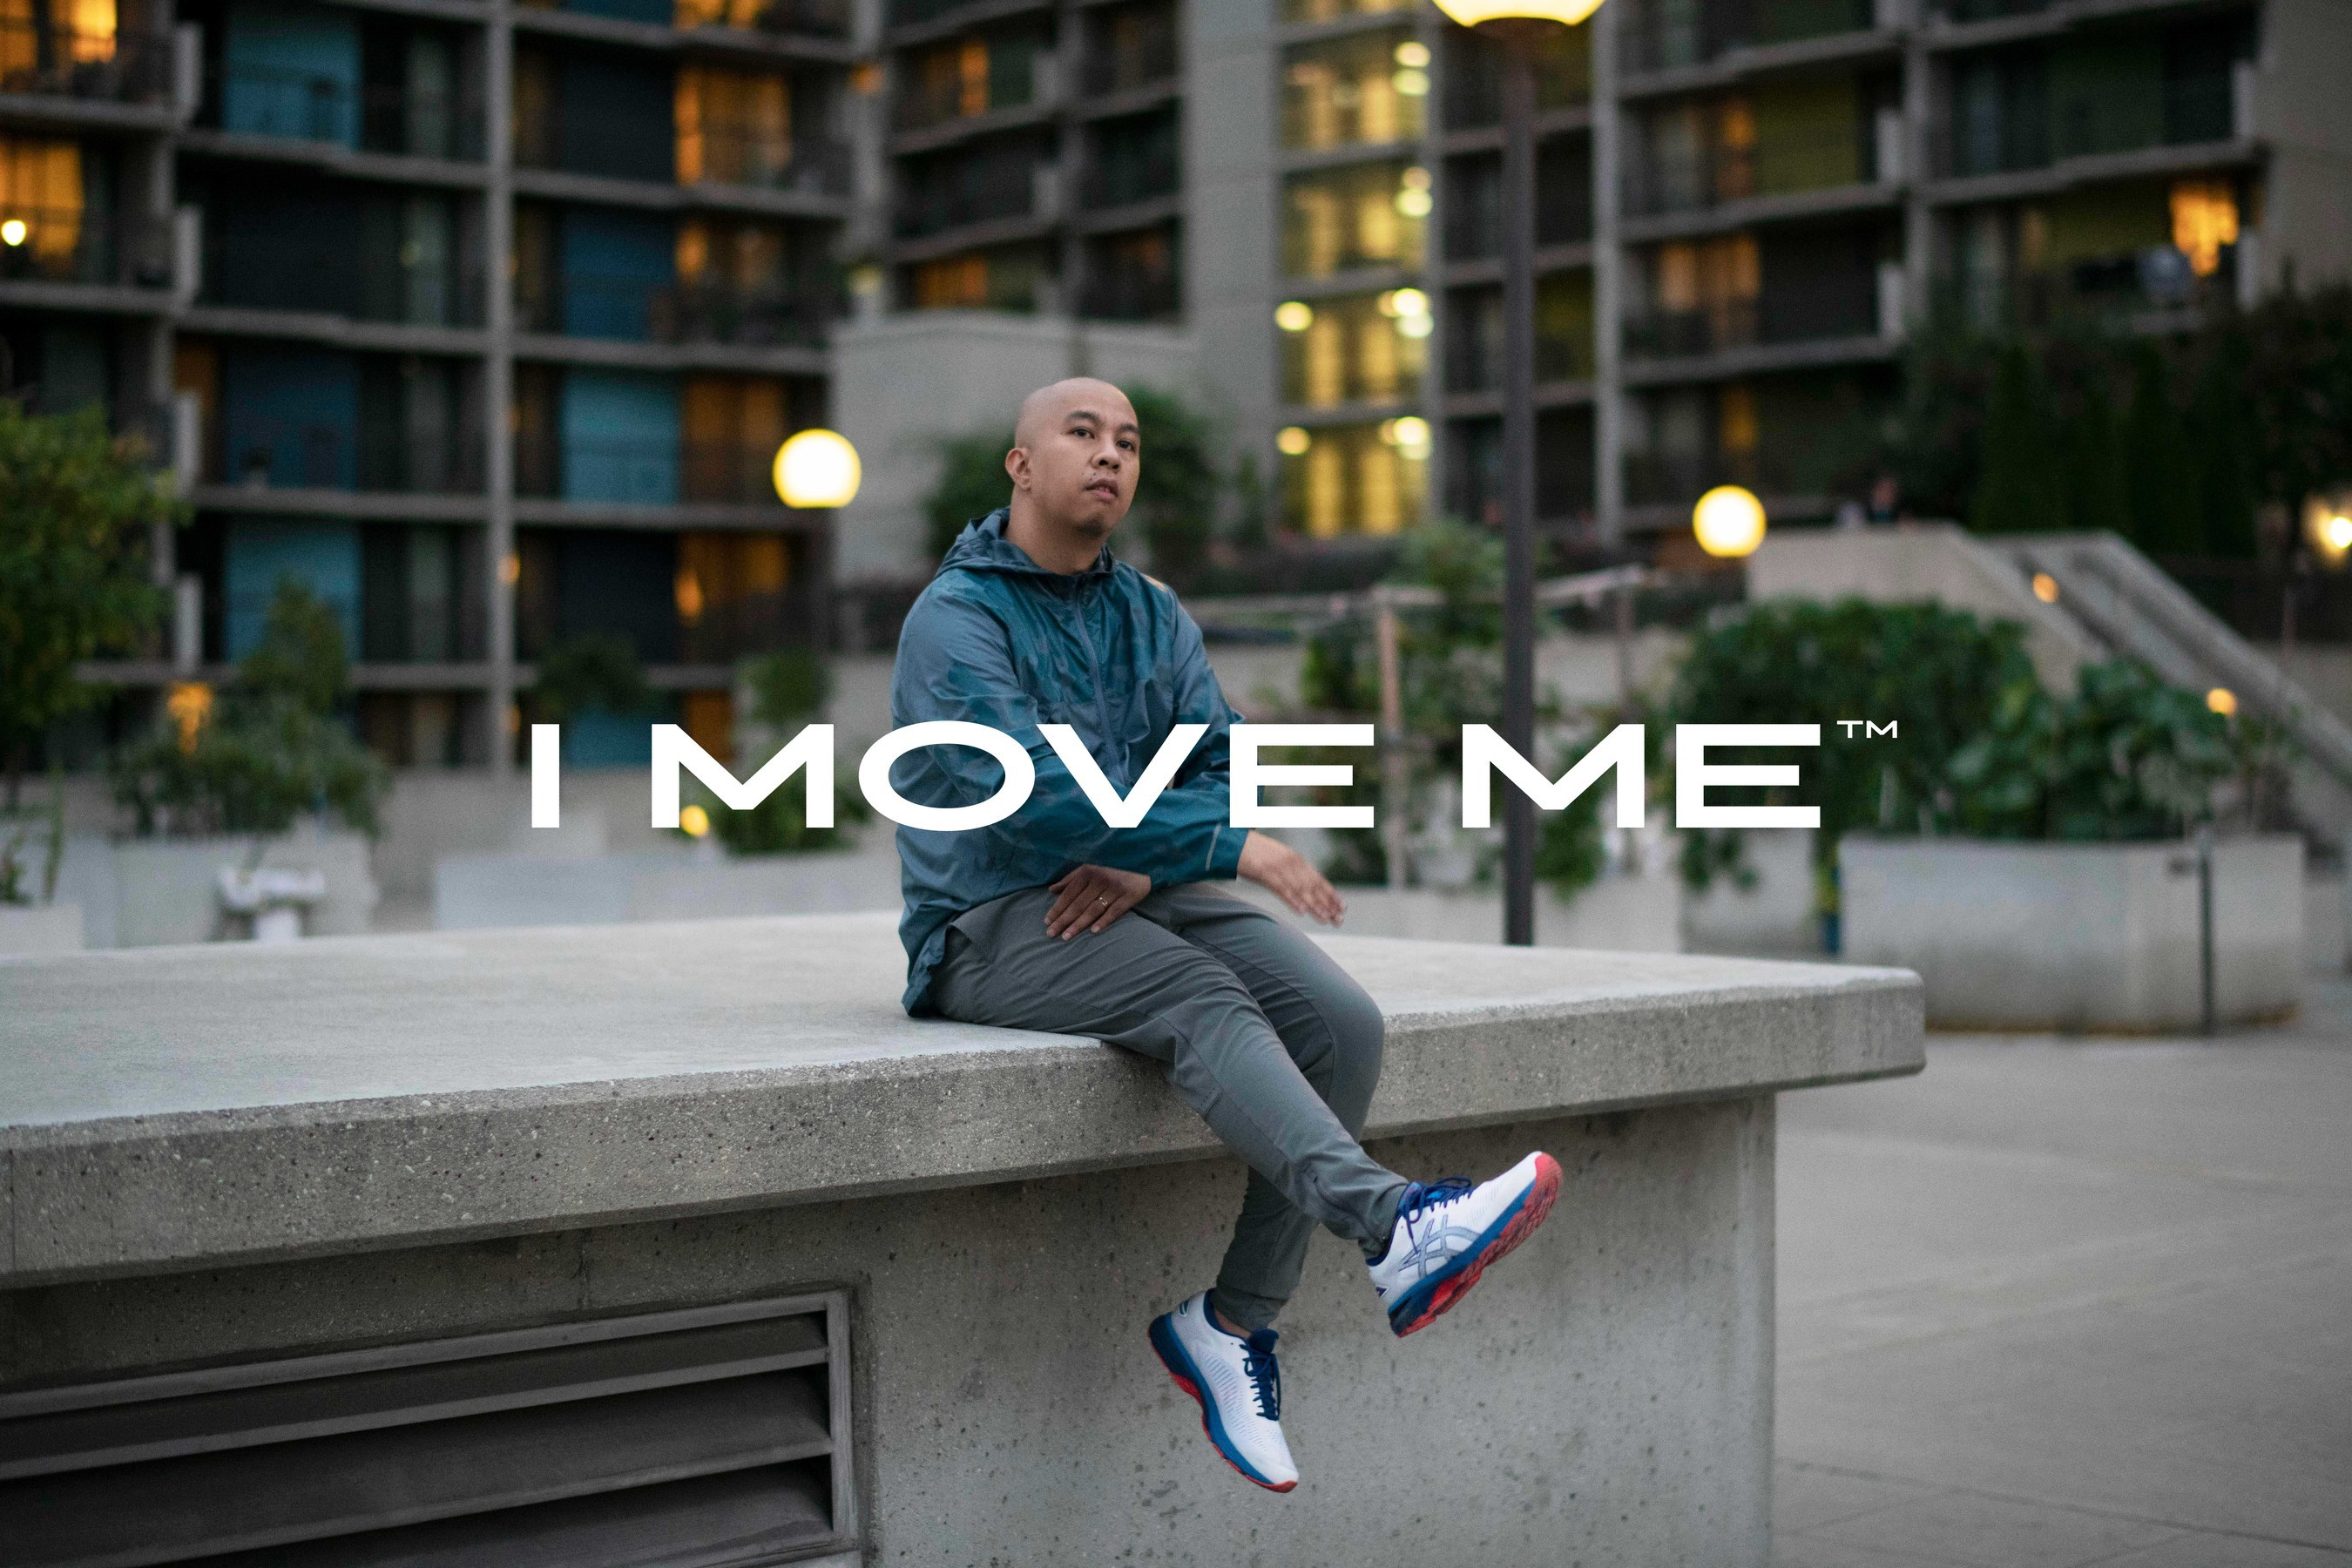 gastar Descendencia Ideal  ASICS Unveils the Next Chapter of the I MOVE ME™ Campaign